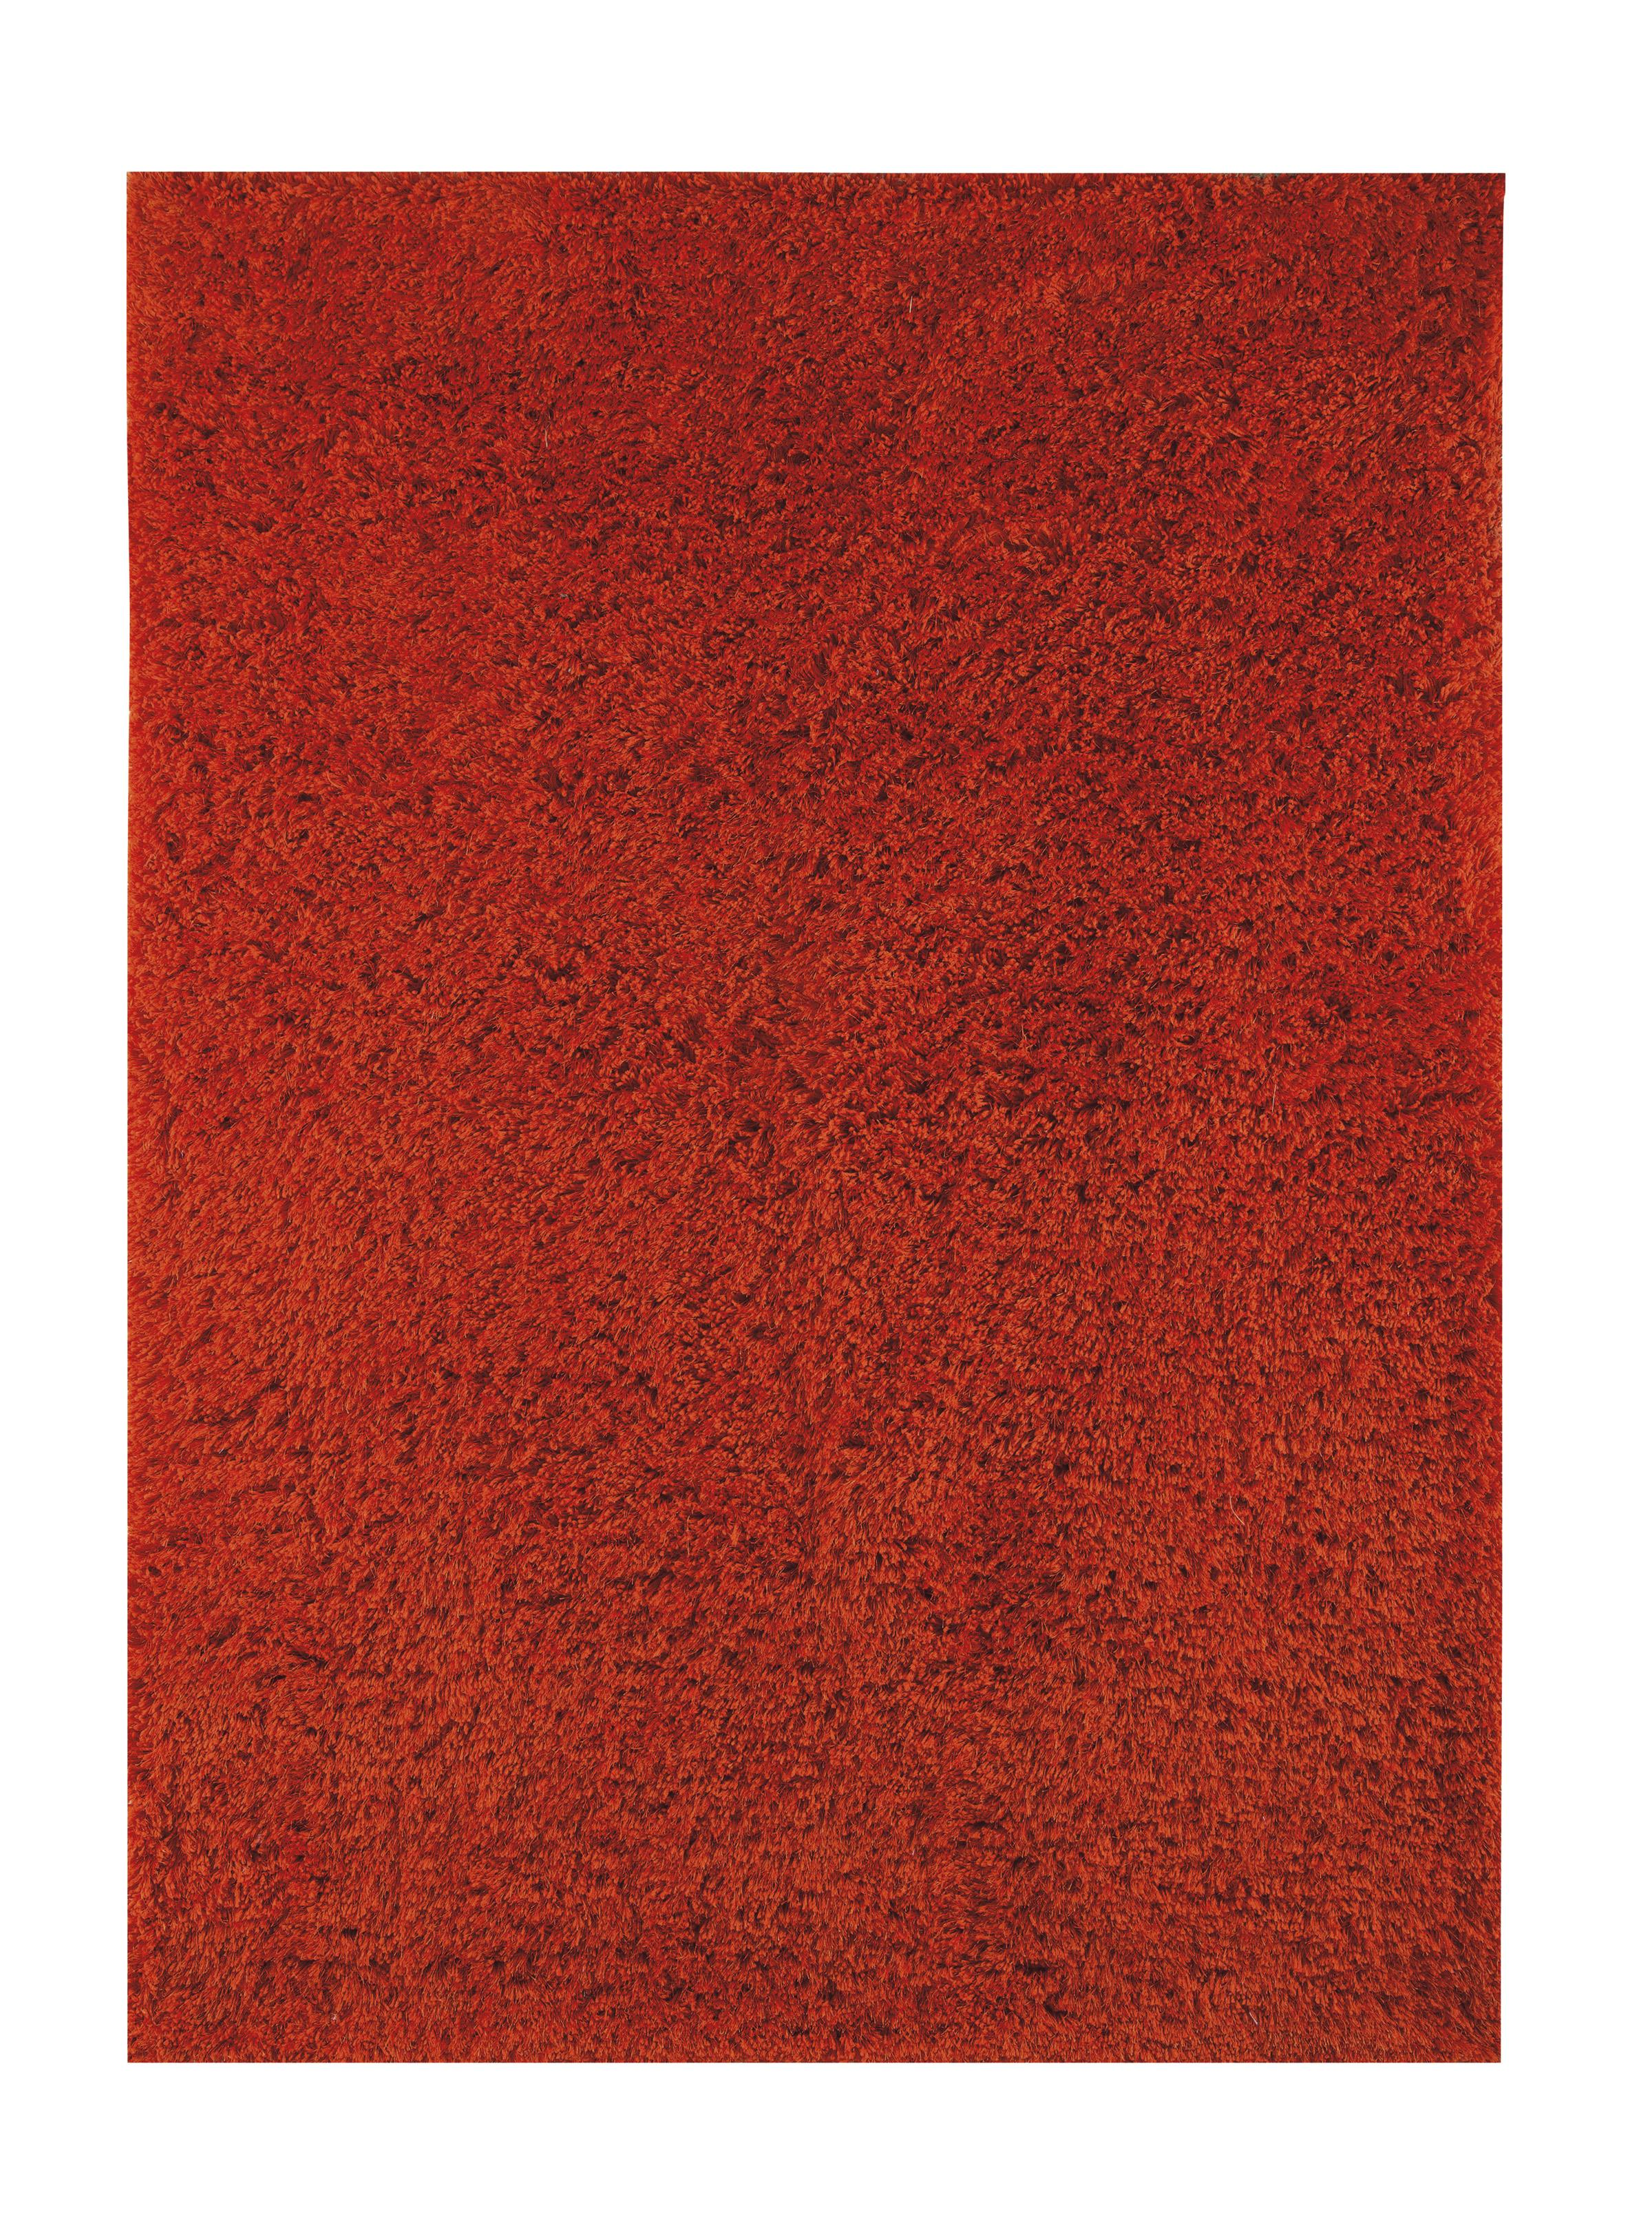 Signature Design by Ashley Contemporary Area Rugs Alonso Orange Medium Rug - Item Number: R400552